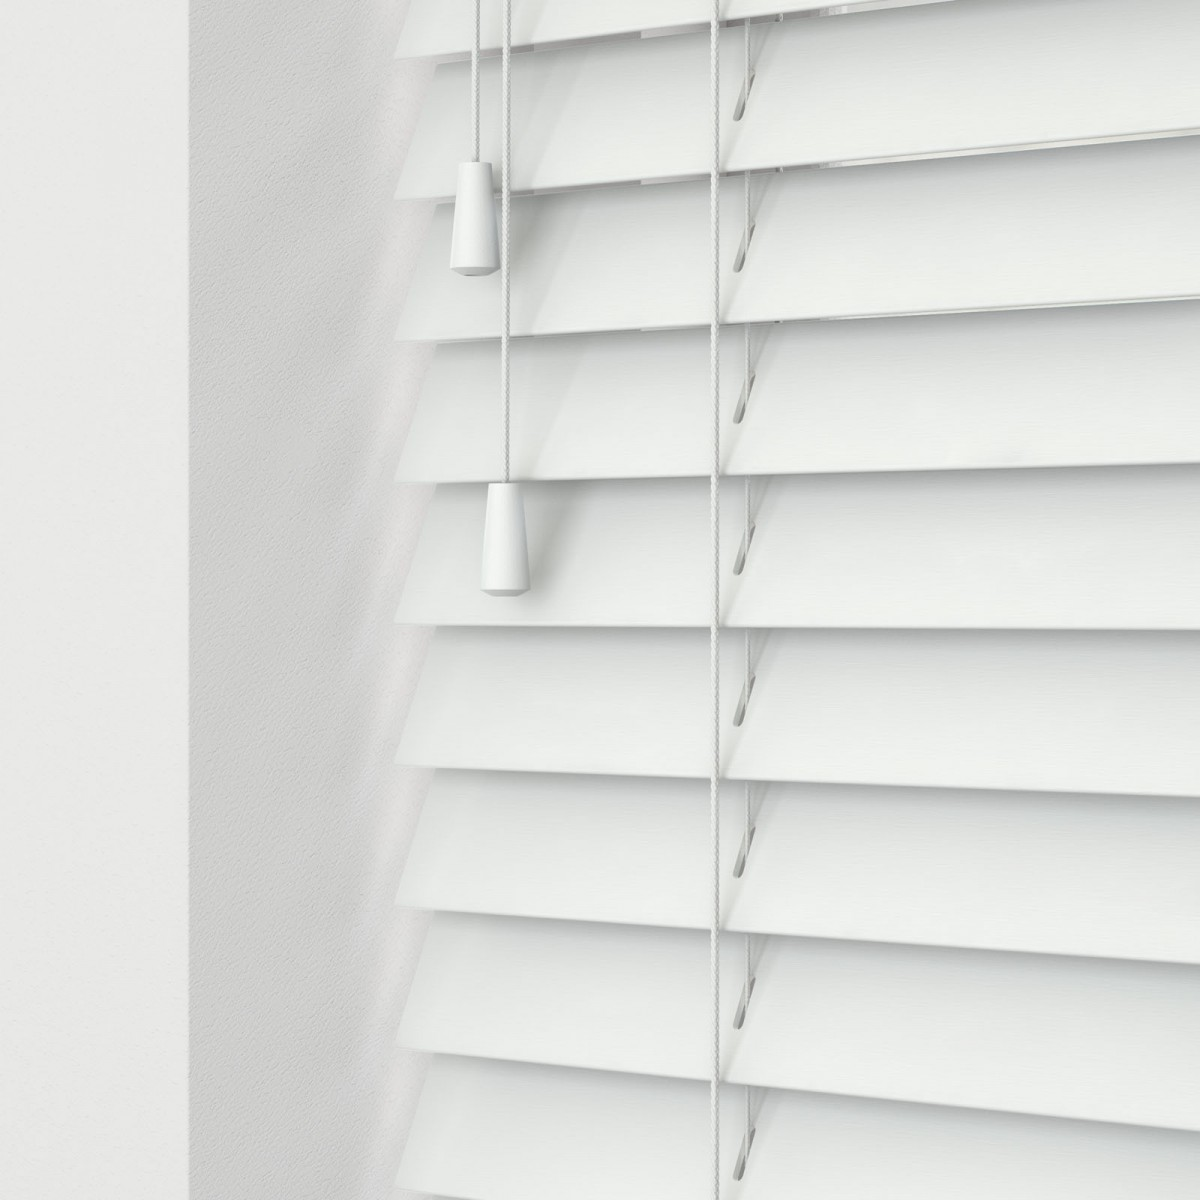 25mm Decora Wooden Venetian Blind